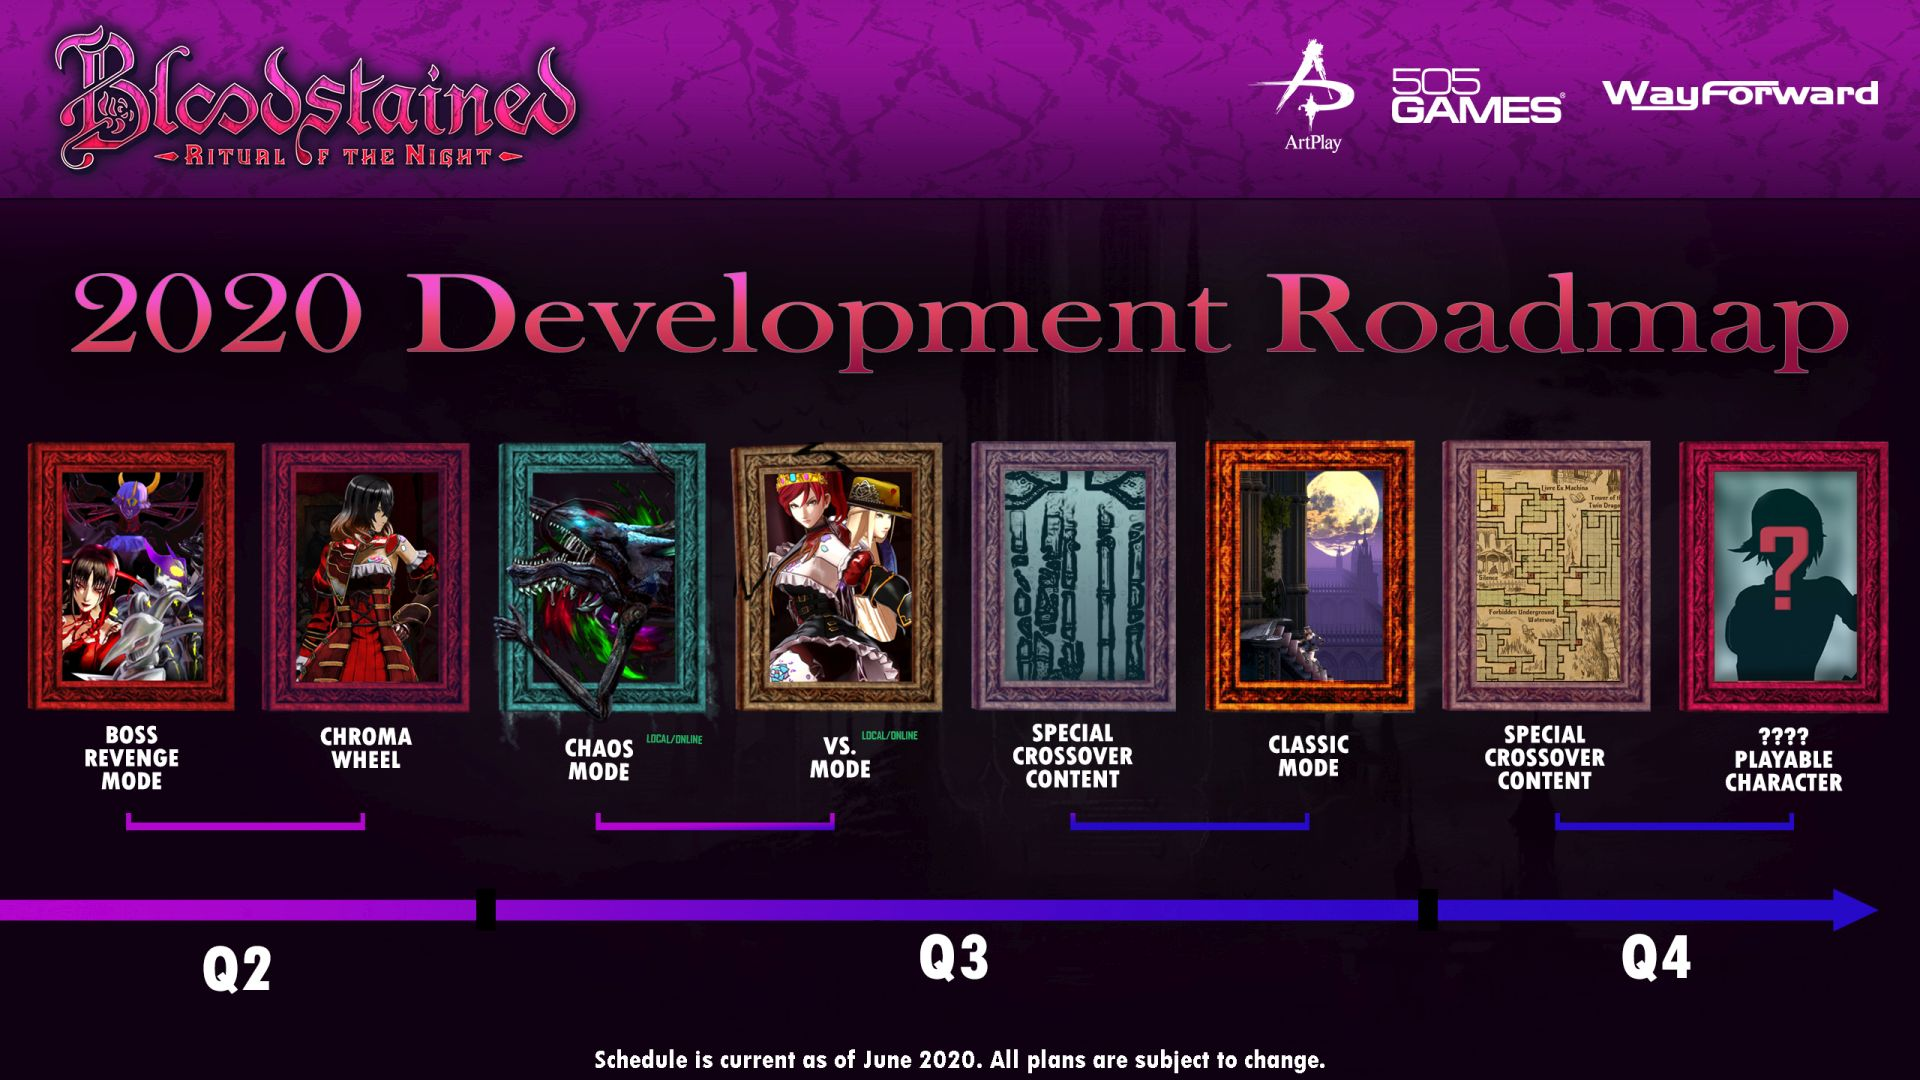 Bloodstained Ritual of the Night 2020 roadmap